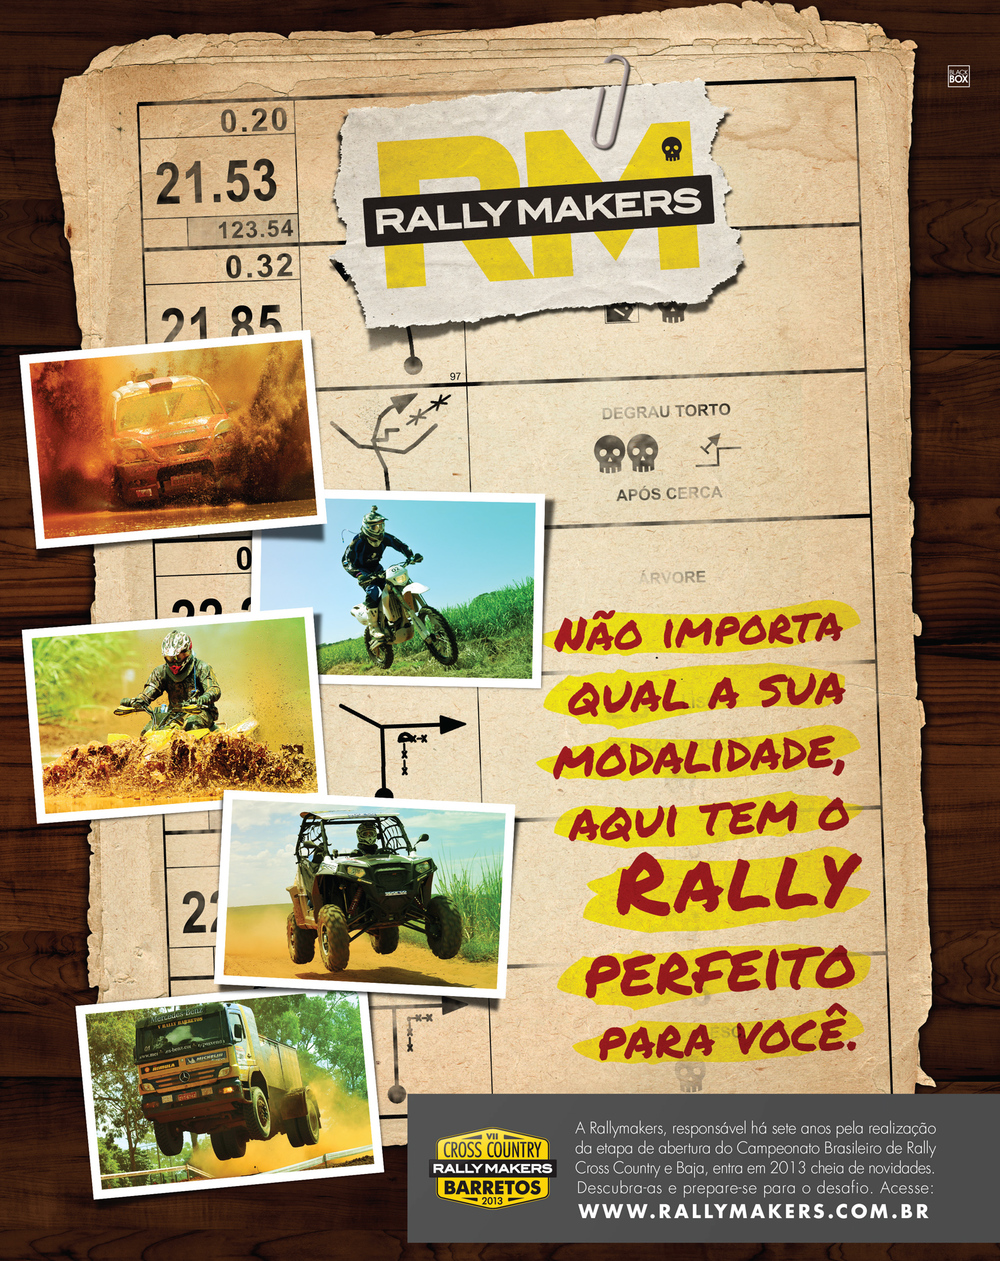 Full Page ad for the Brazilian Rally Yearbook.